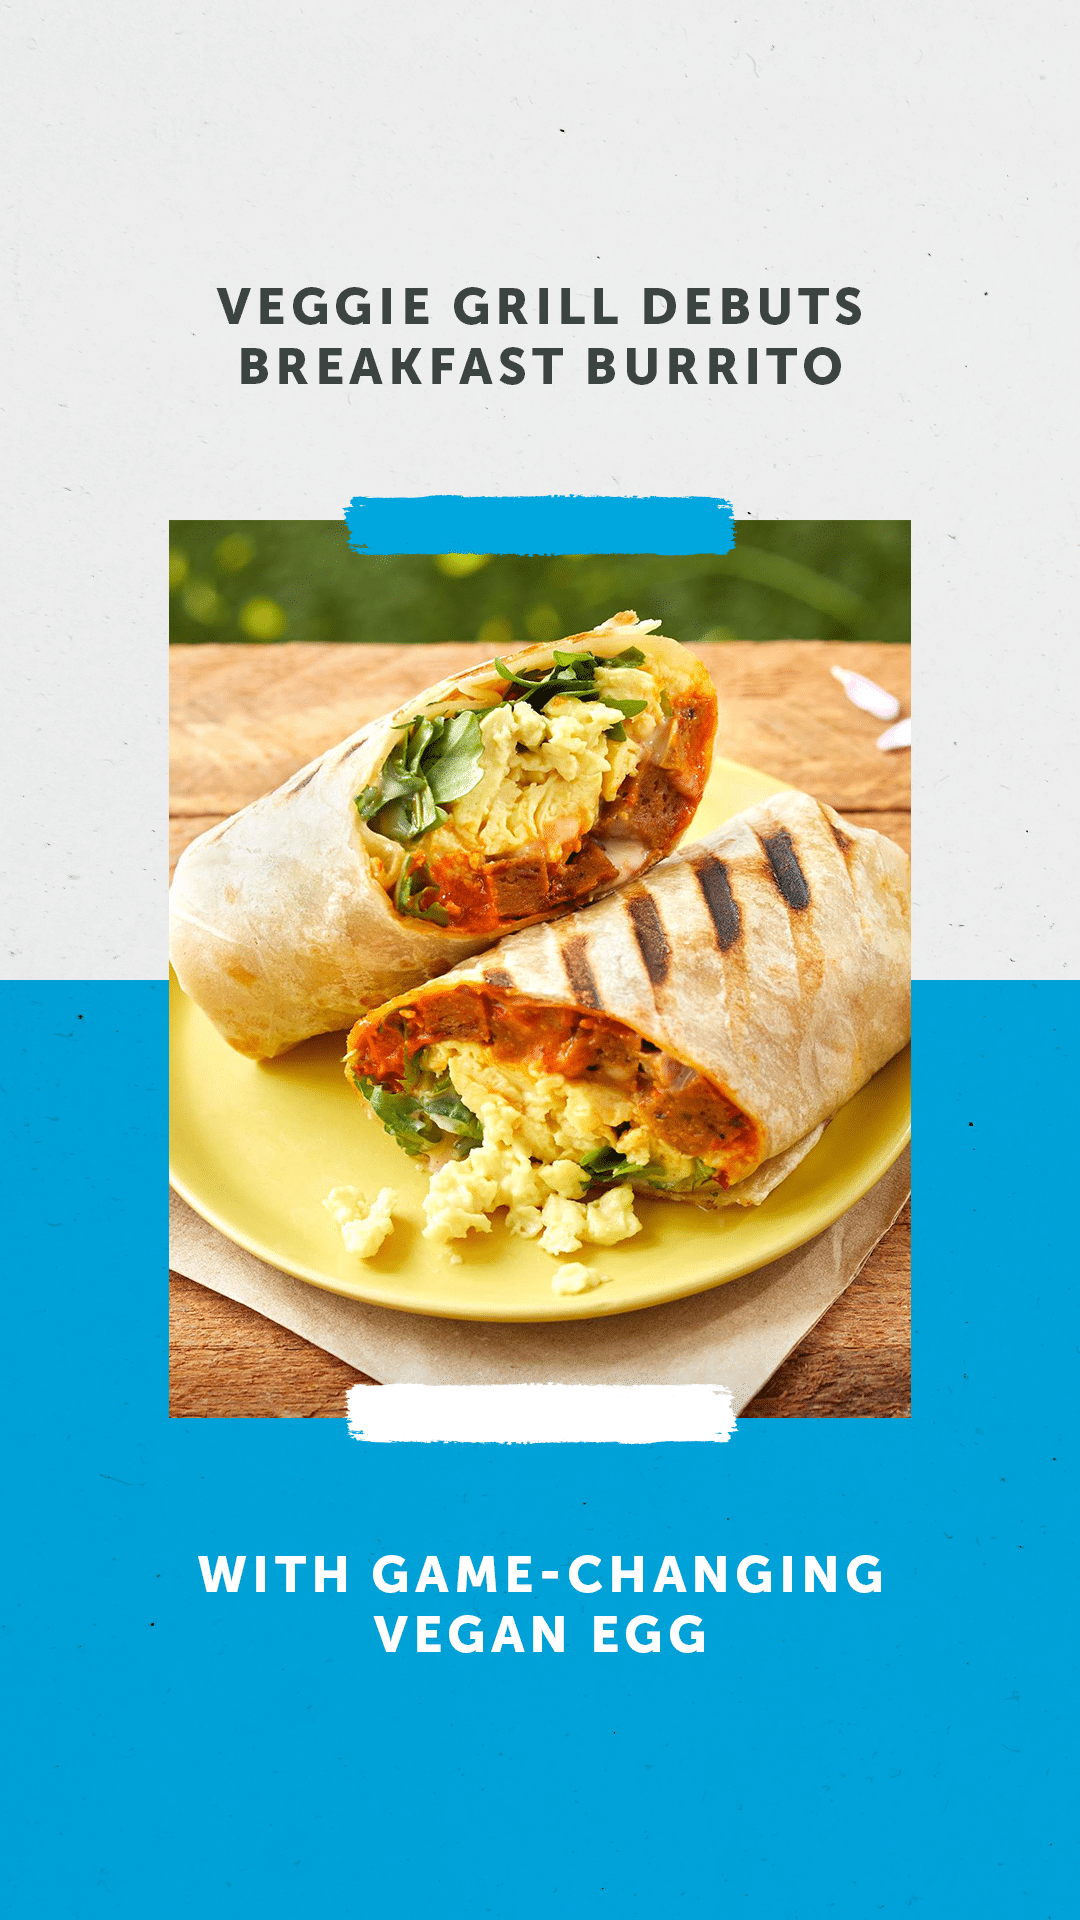 Veggie Grill Debuts Breakfast Burrito With Game-Changing Vegan Egg